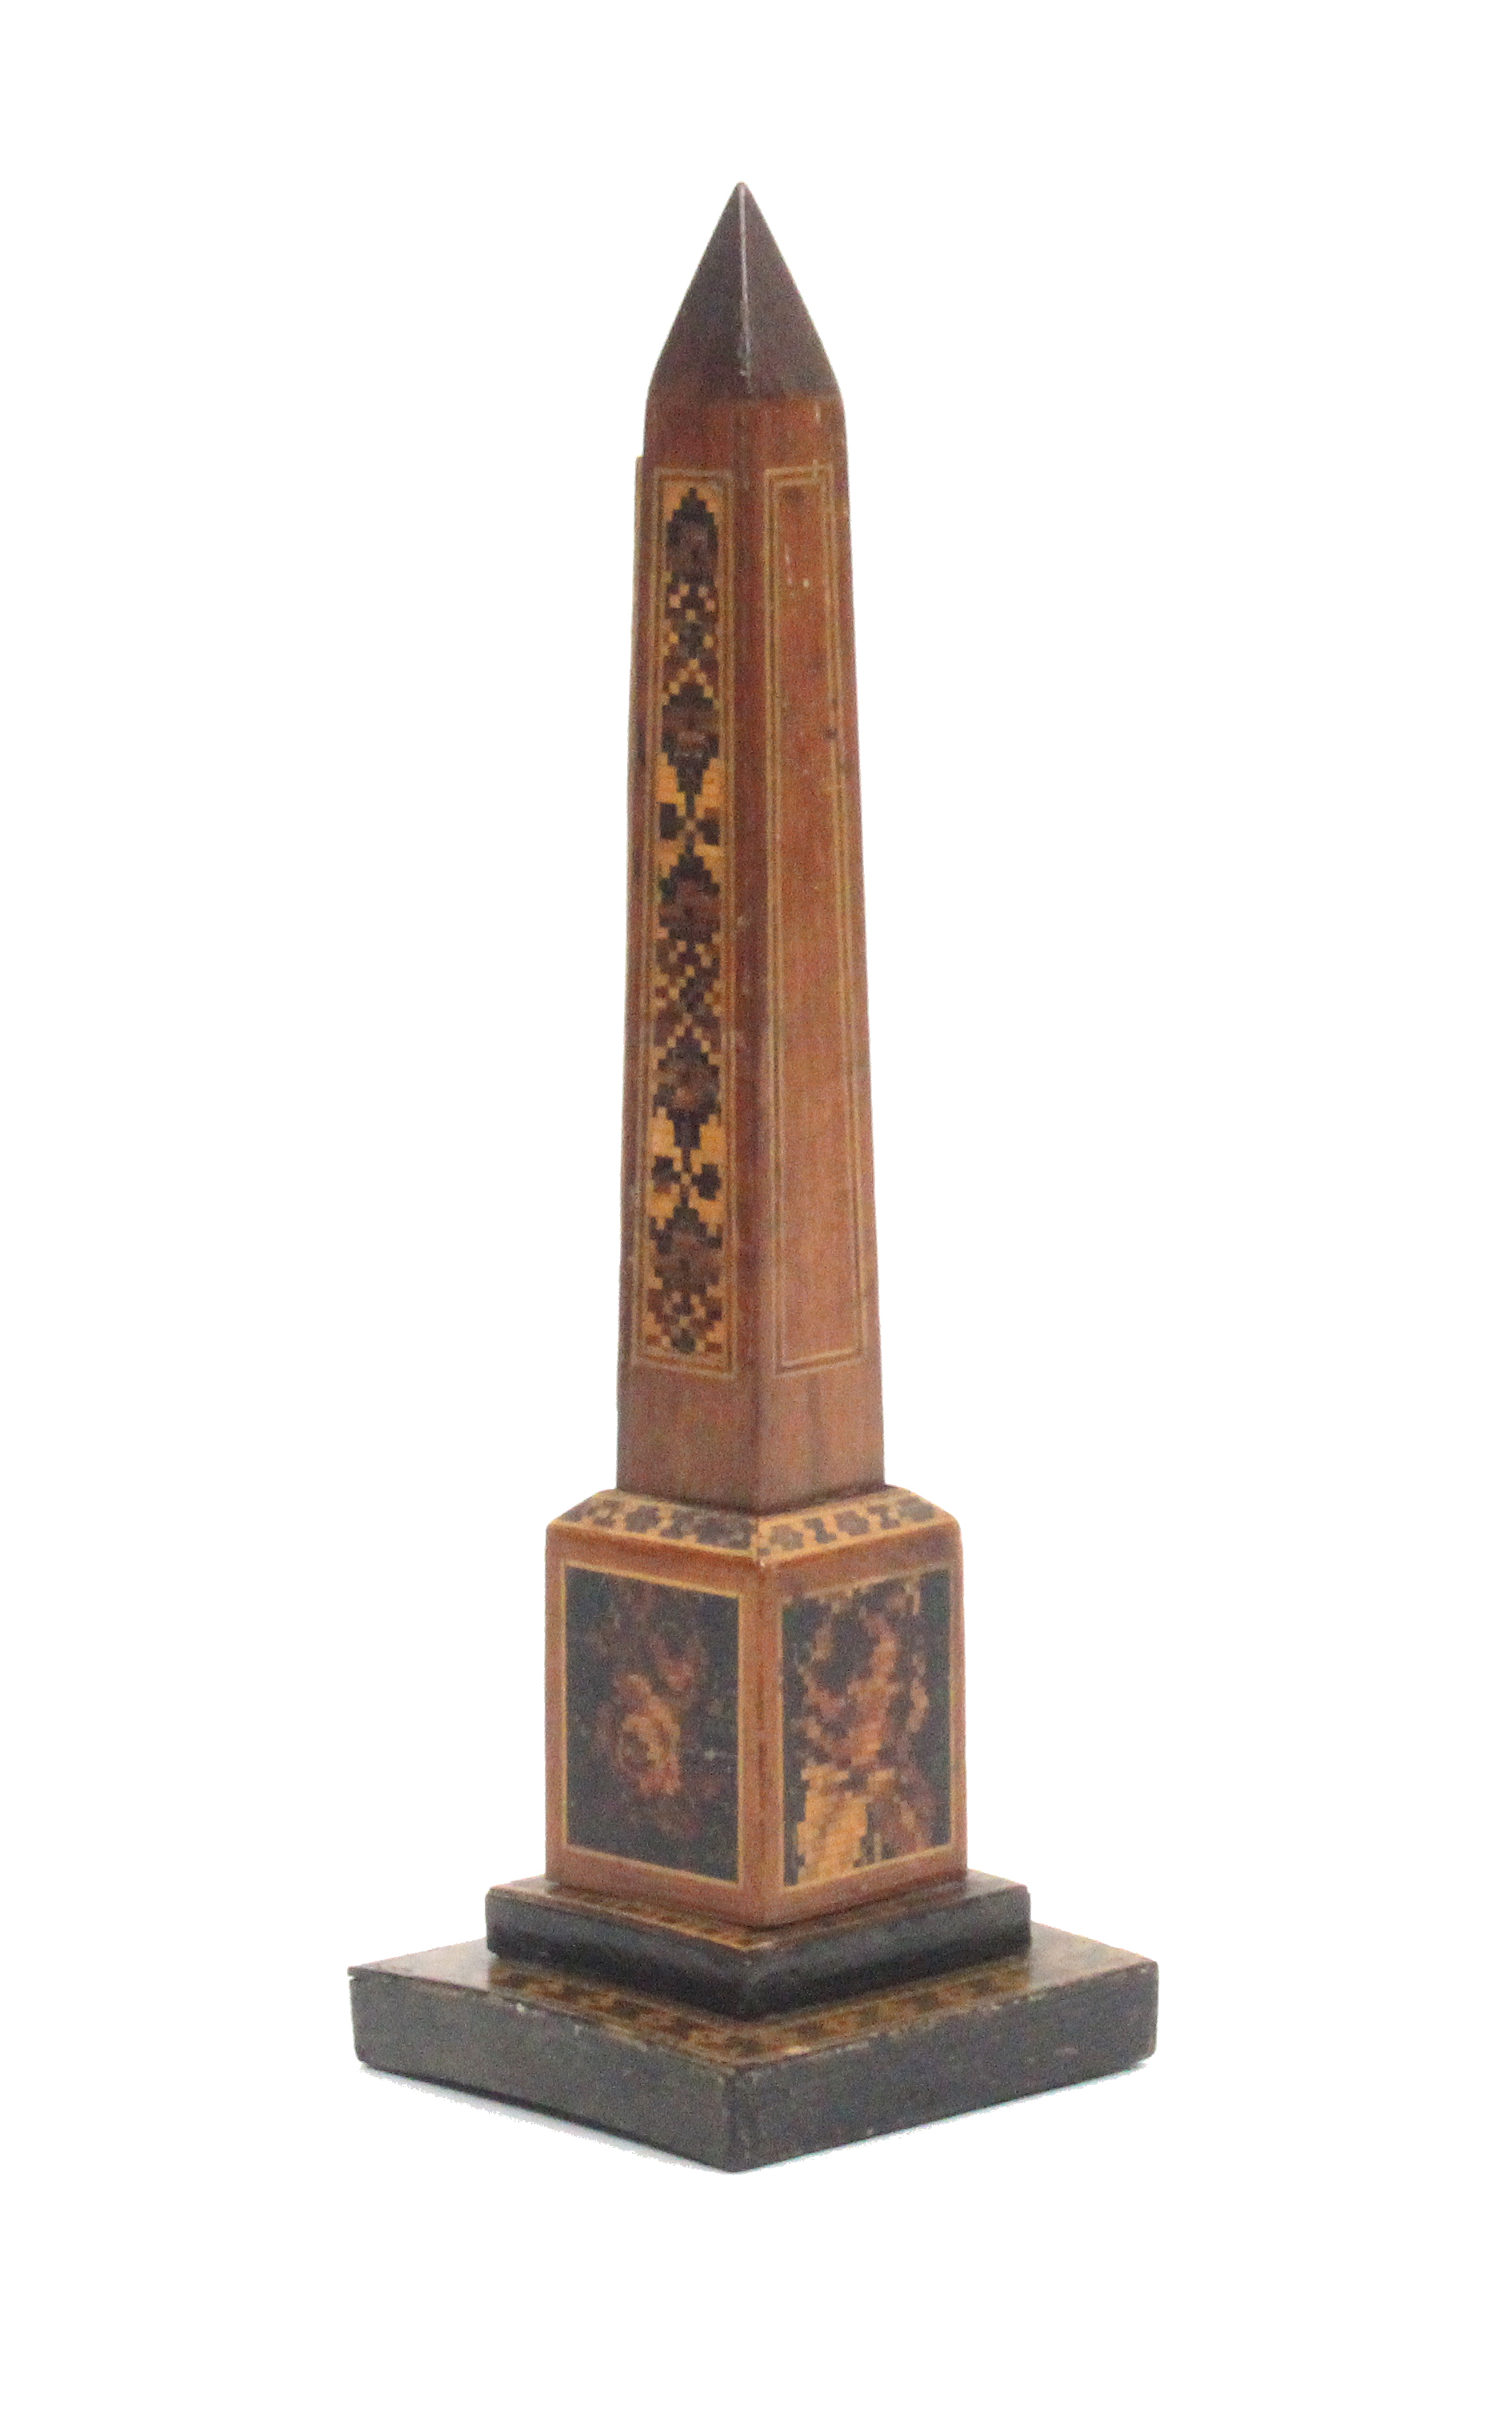 Lot 39 - A Tunbridge ware rosewood obelisque form thermometer the stepped base with geometric and floral